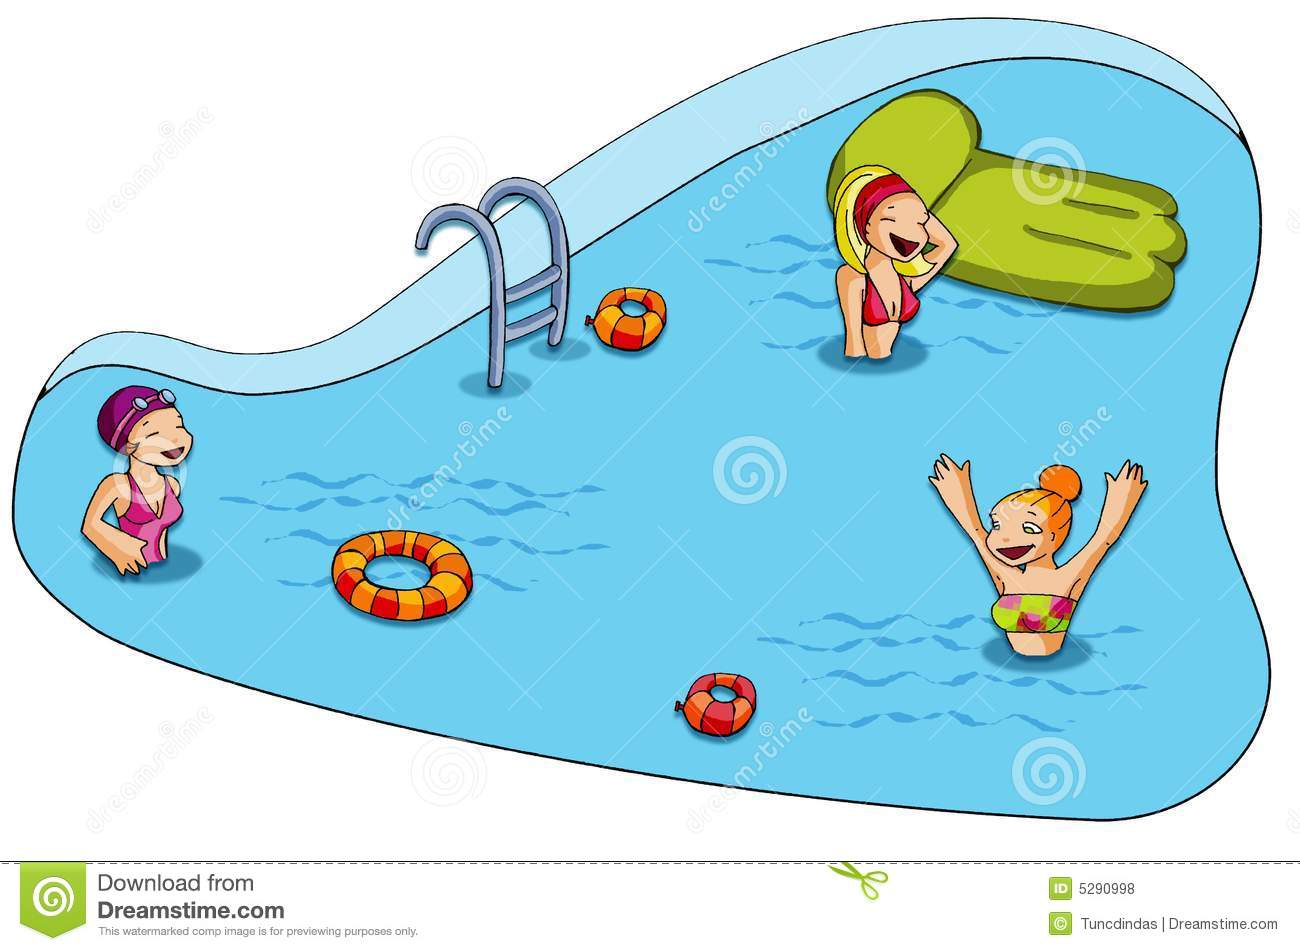 Free clipart images swimming pool svg freeuse library 73+ Swimming Pool Clipart | ClipartLook svg freeuse library